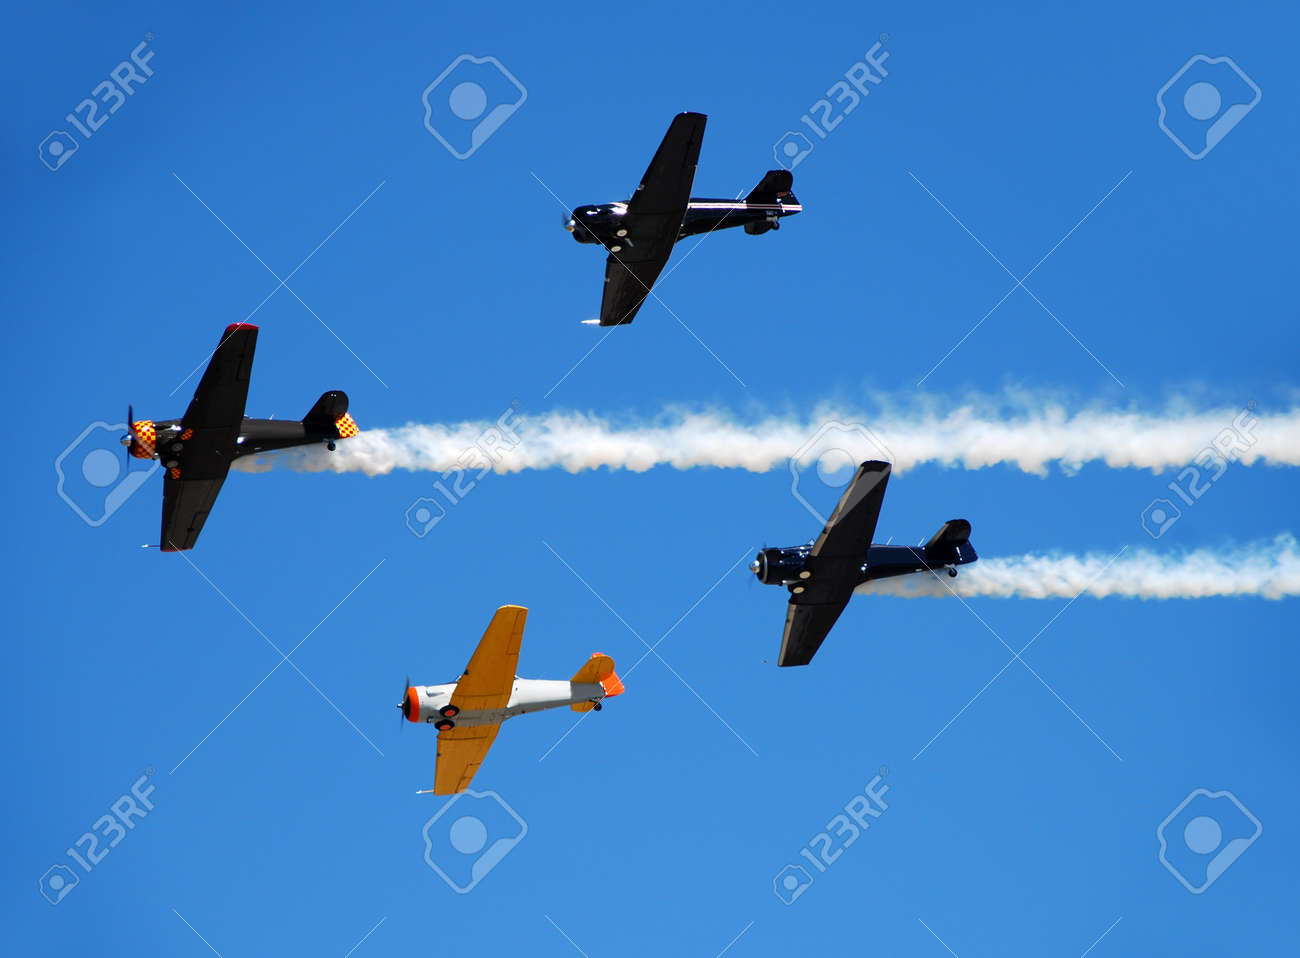 Formation of world war 2 airplanes passing overhead Stock Photo - 4349556